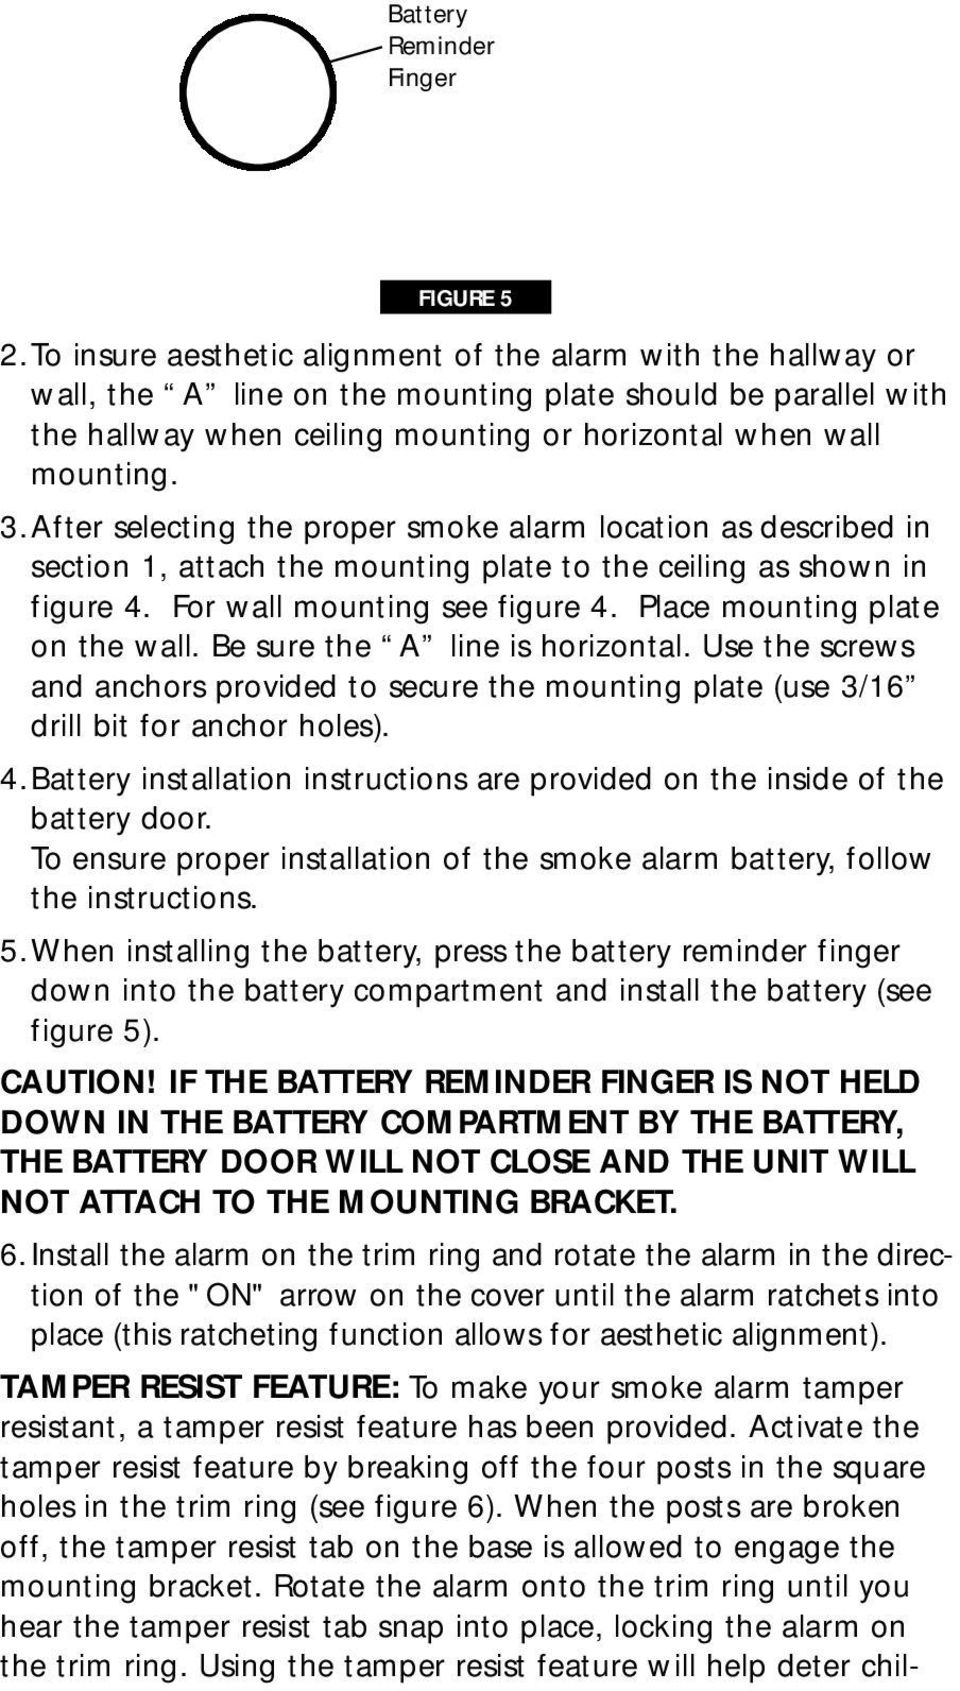 After selecting the proper smoke alarm location as described in section 1, attach the mounting plate to the ceiling as shown in figure 4. For wall mounting see figure 4.